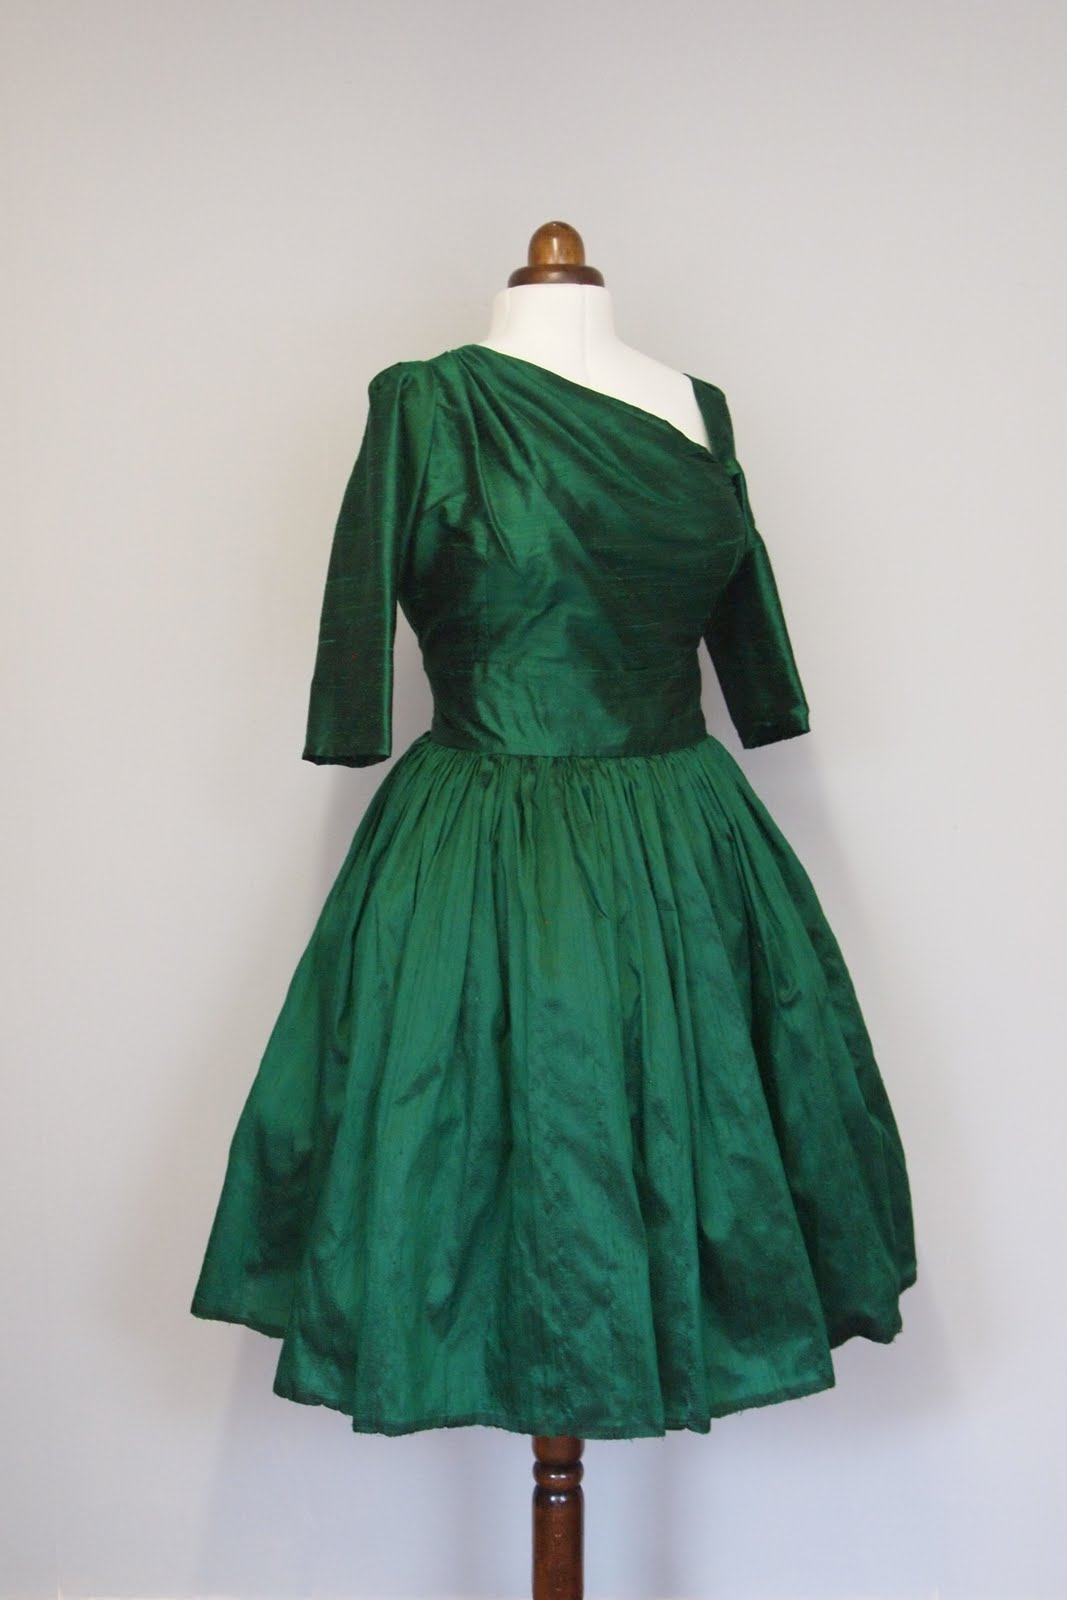 alexandra king vintage inspired clothing emerald